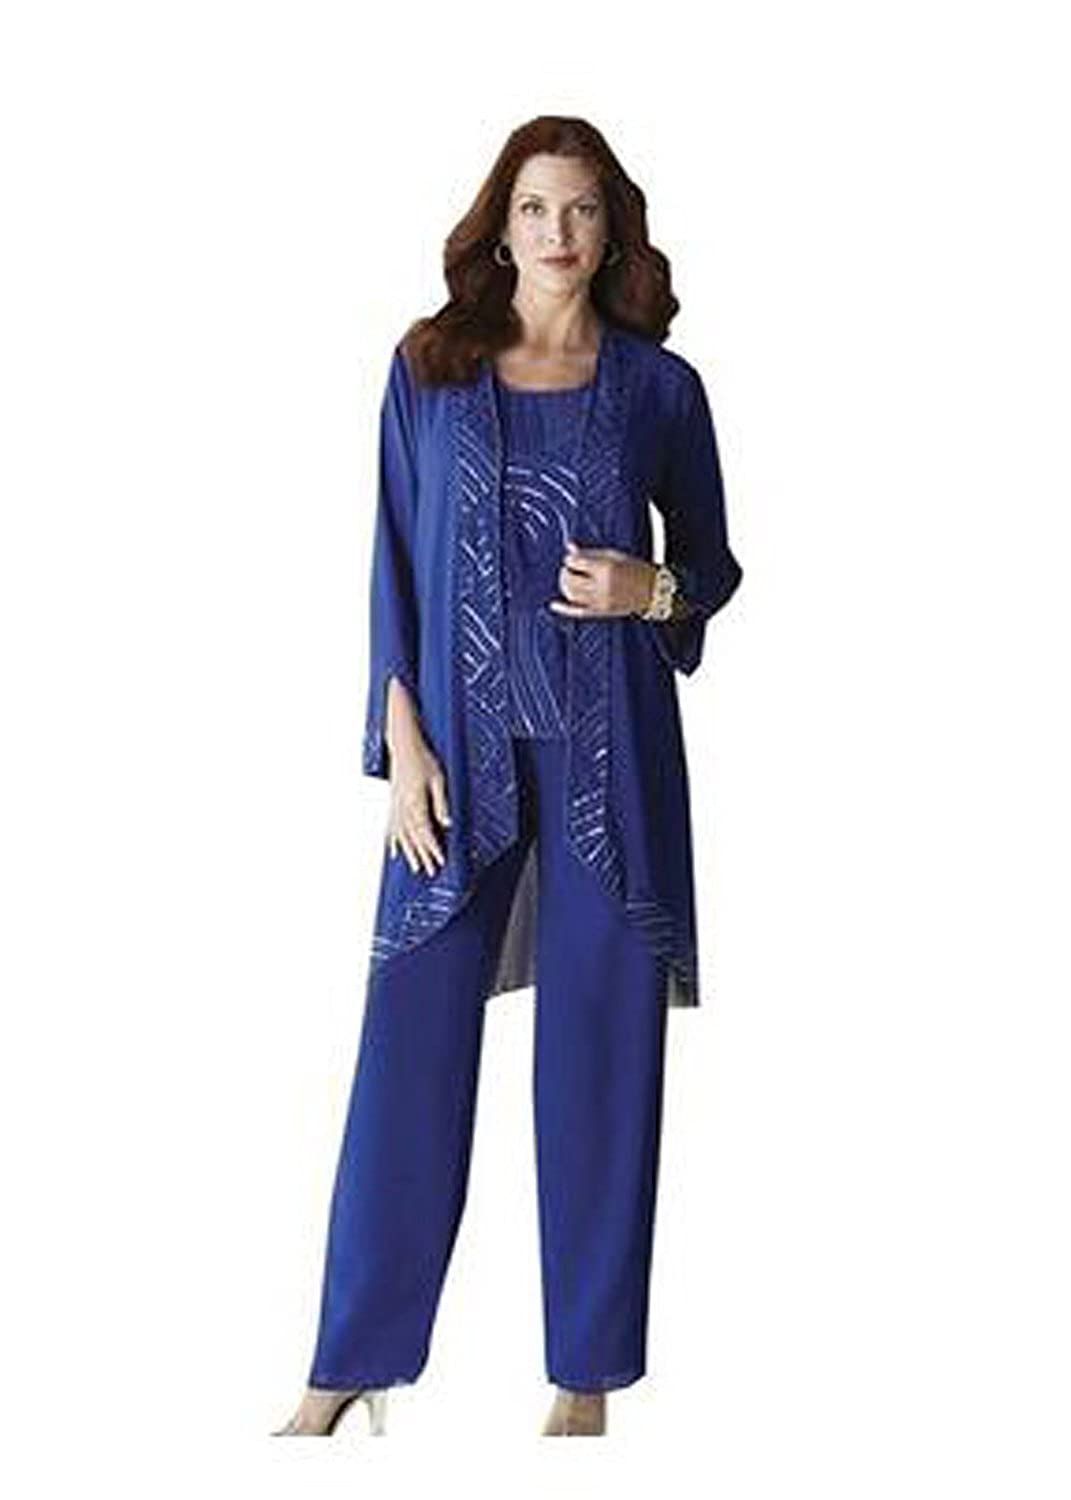 1920s Style Women's Pants, Trousers, Knickers Kelaixiang Blue Chiffon with Sequins Mother Pant Suits 3 Pieces $159.00 AT vintagedancer.com